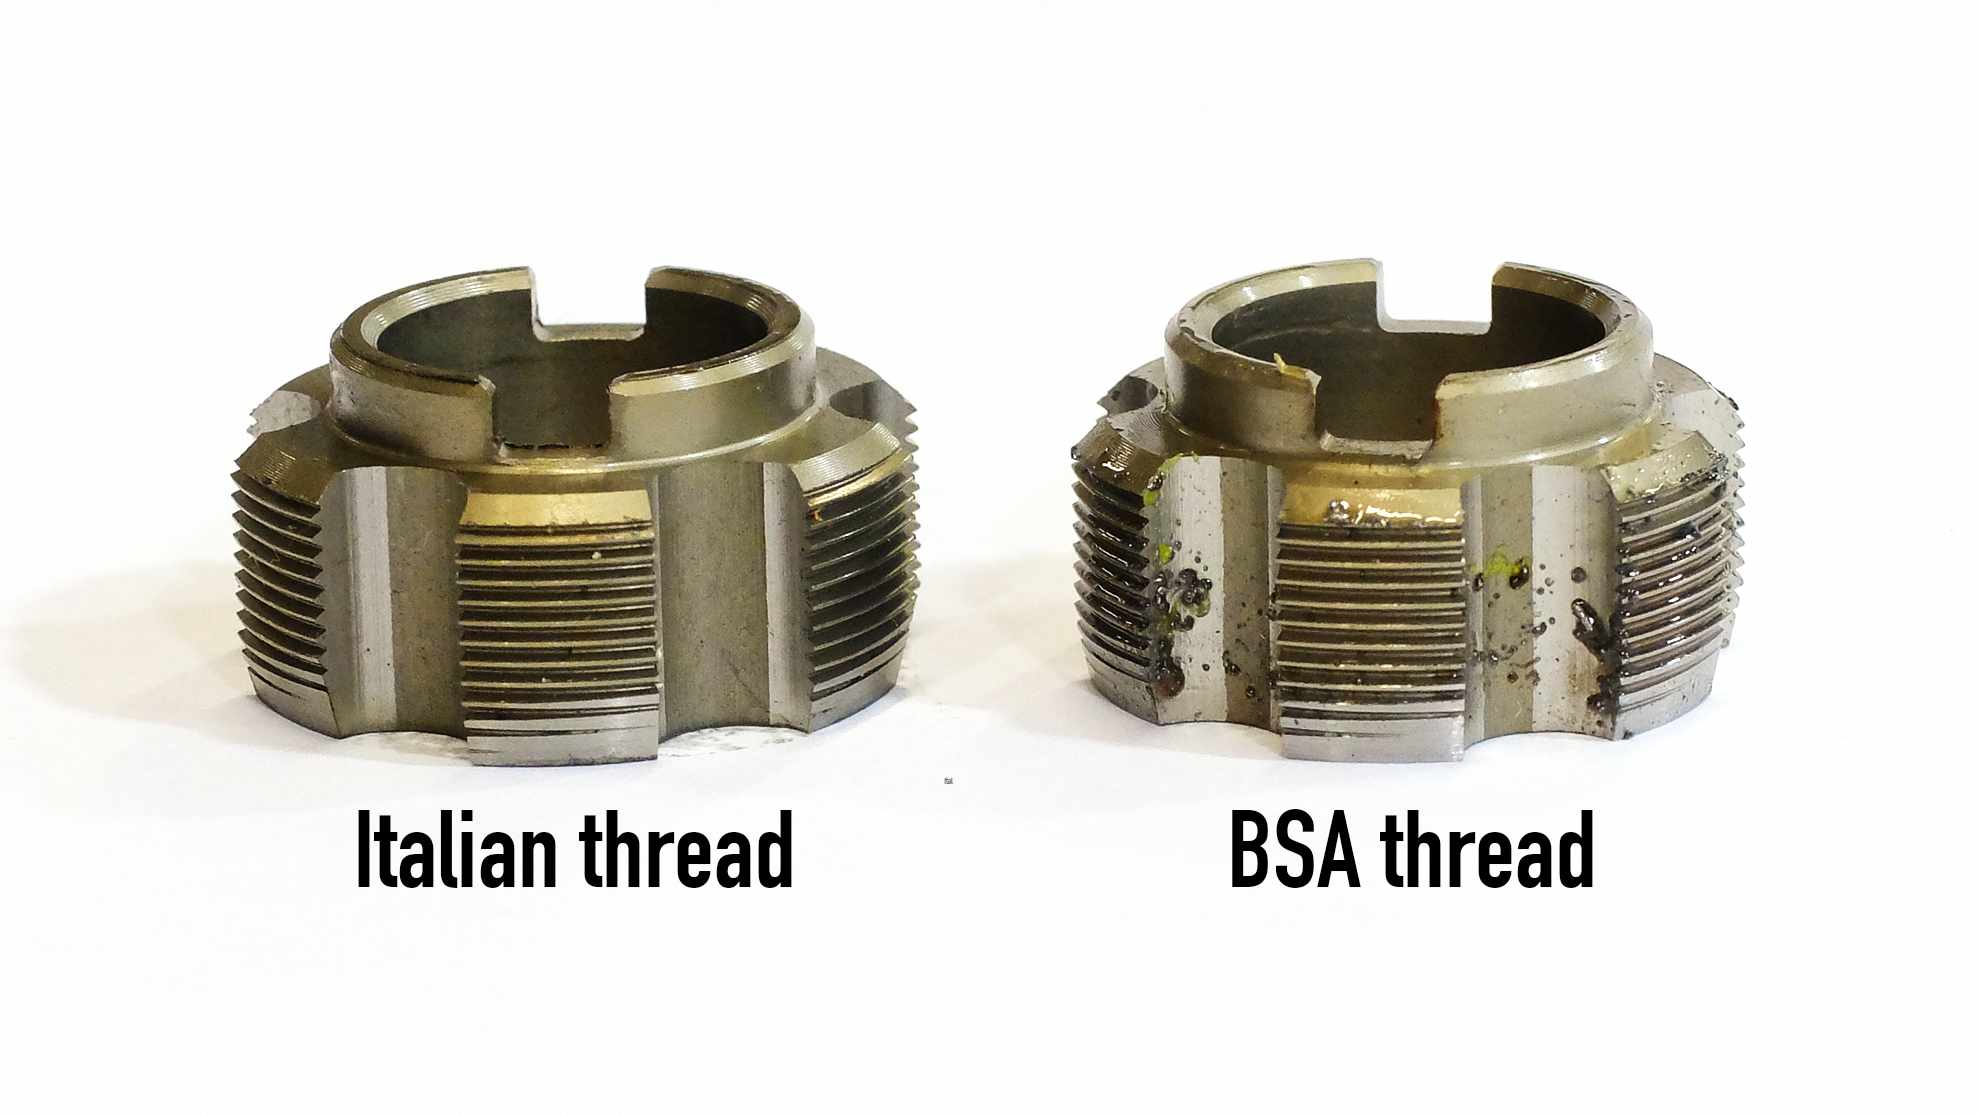 The difference between an Italian threaded and BSA threaded bottom bracket is incredibly subtle. Unsurprisingly, our Italian threaded tap doesn't see too much action